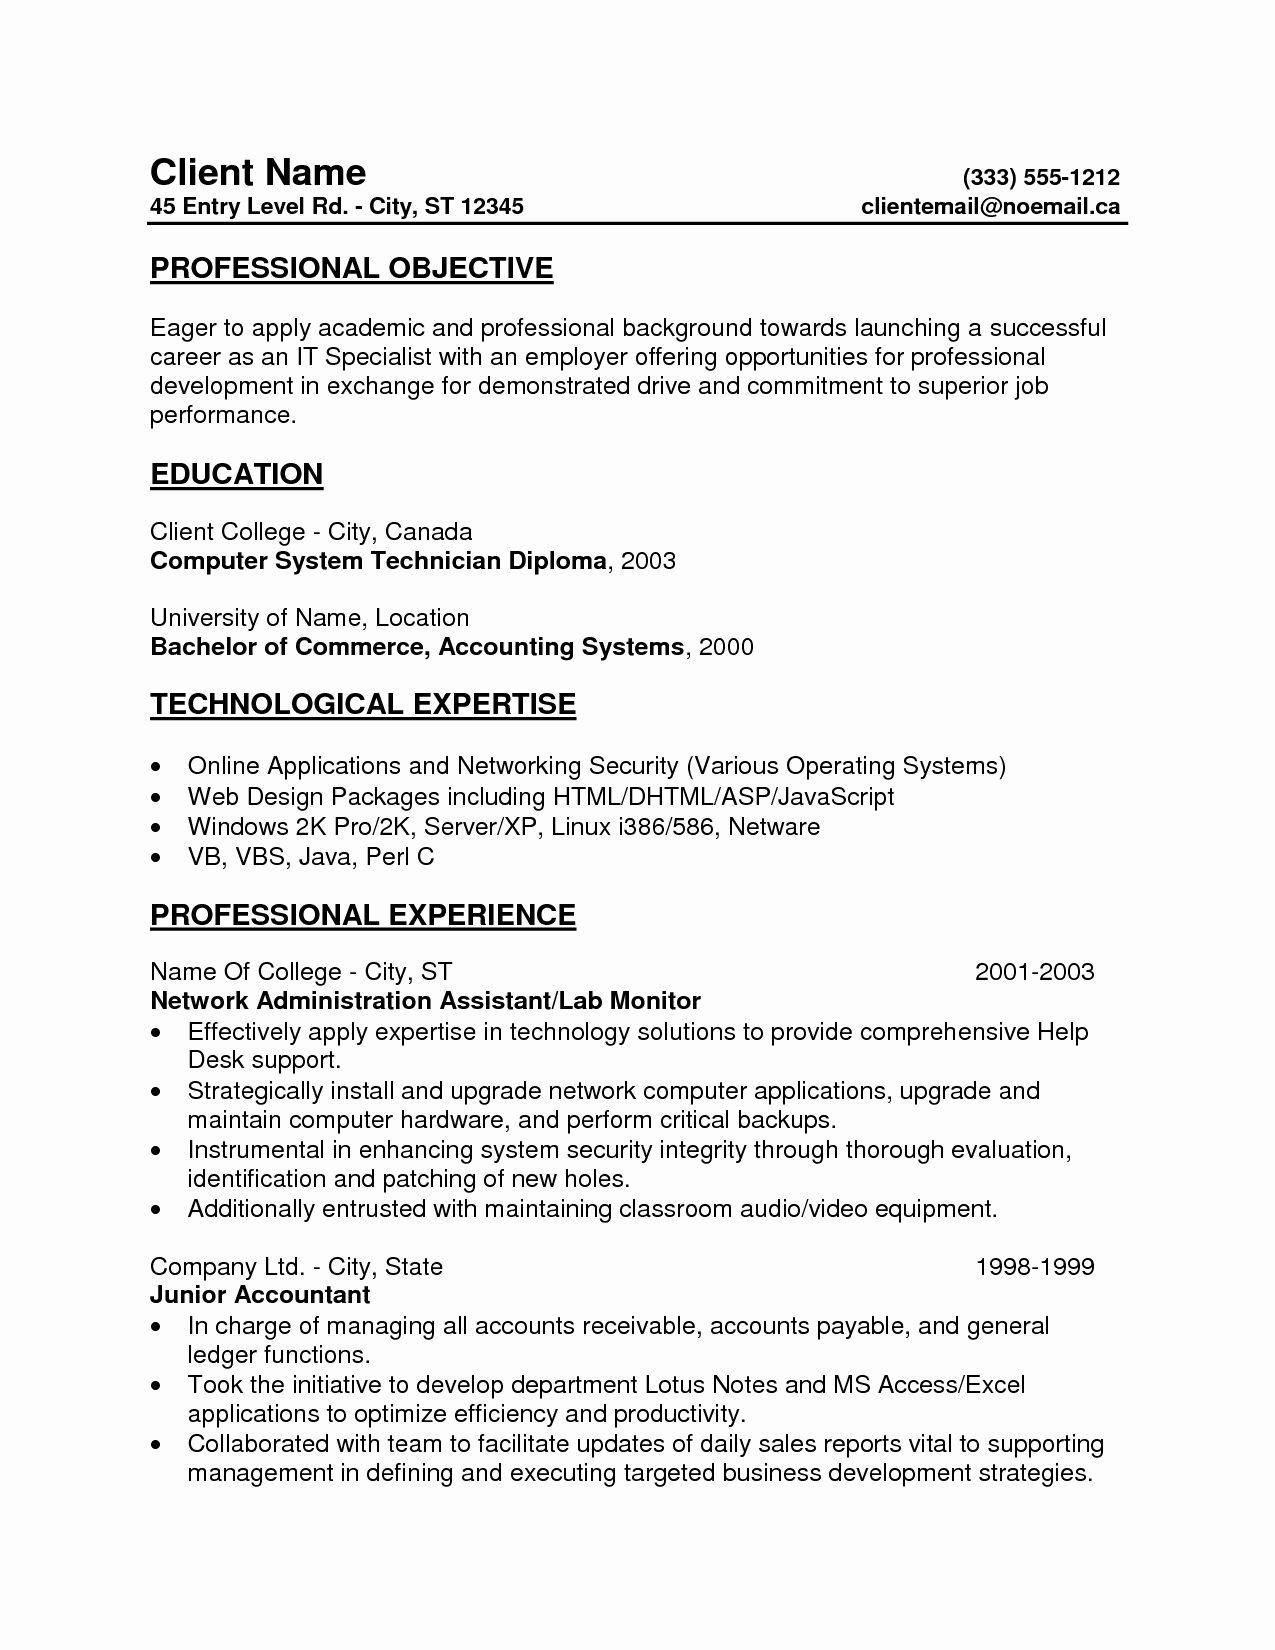 20 Entry Level Office assistant Resume Resume objective